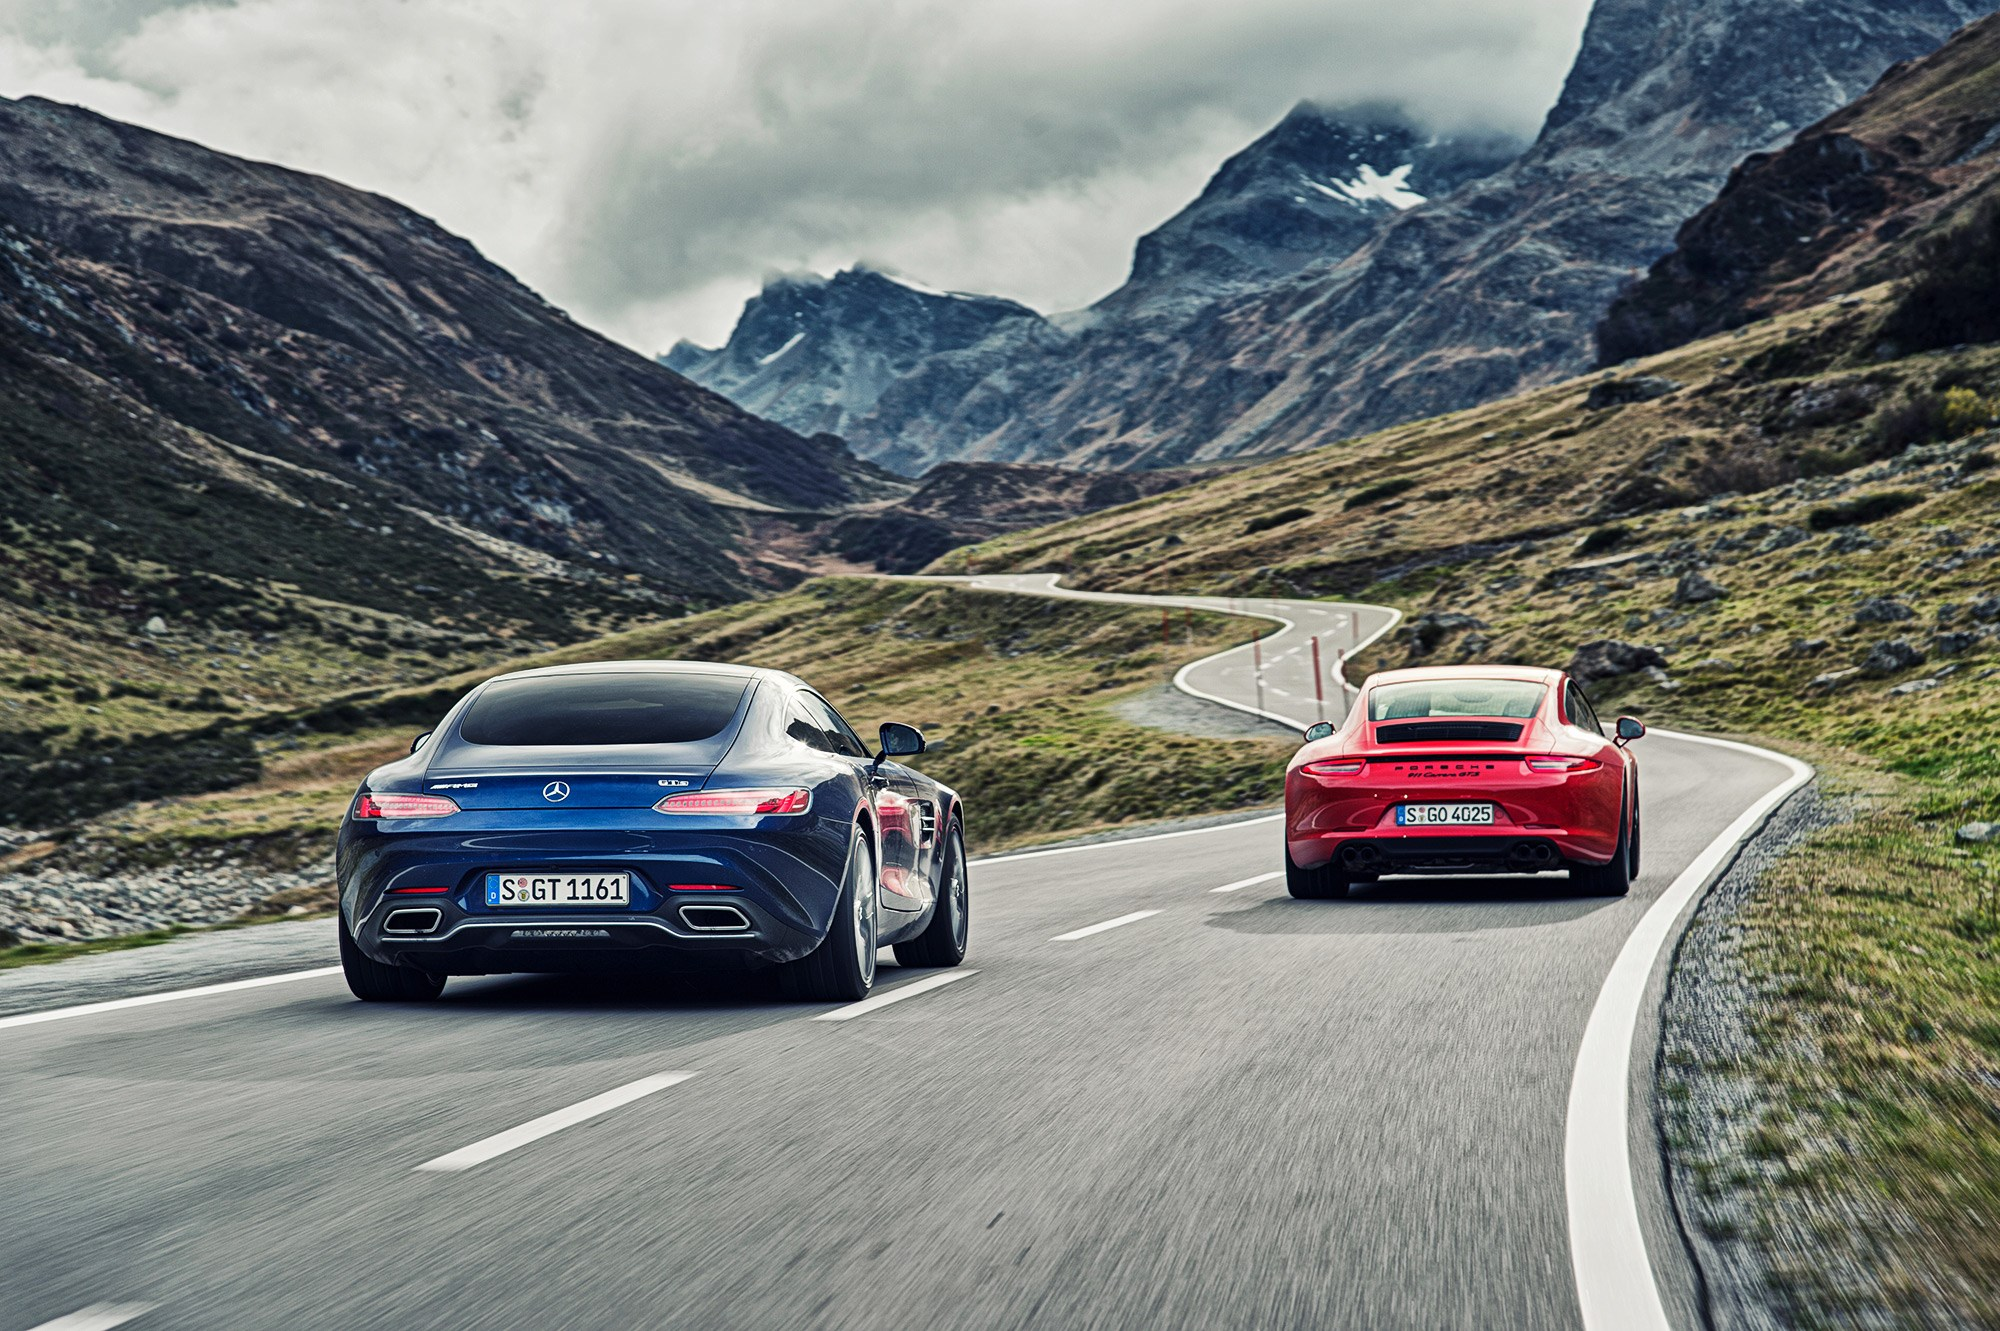 Mercedes Amg Gts Vs Porsche 911 Gts 2015 Review By Car